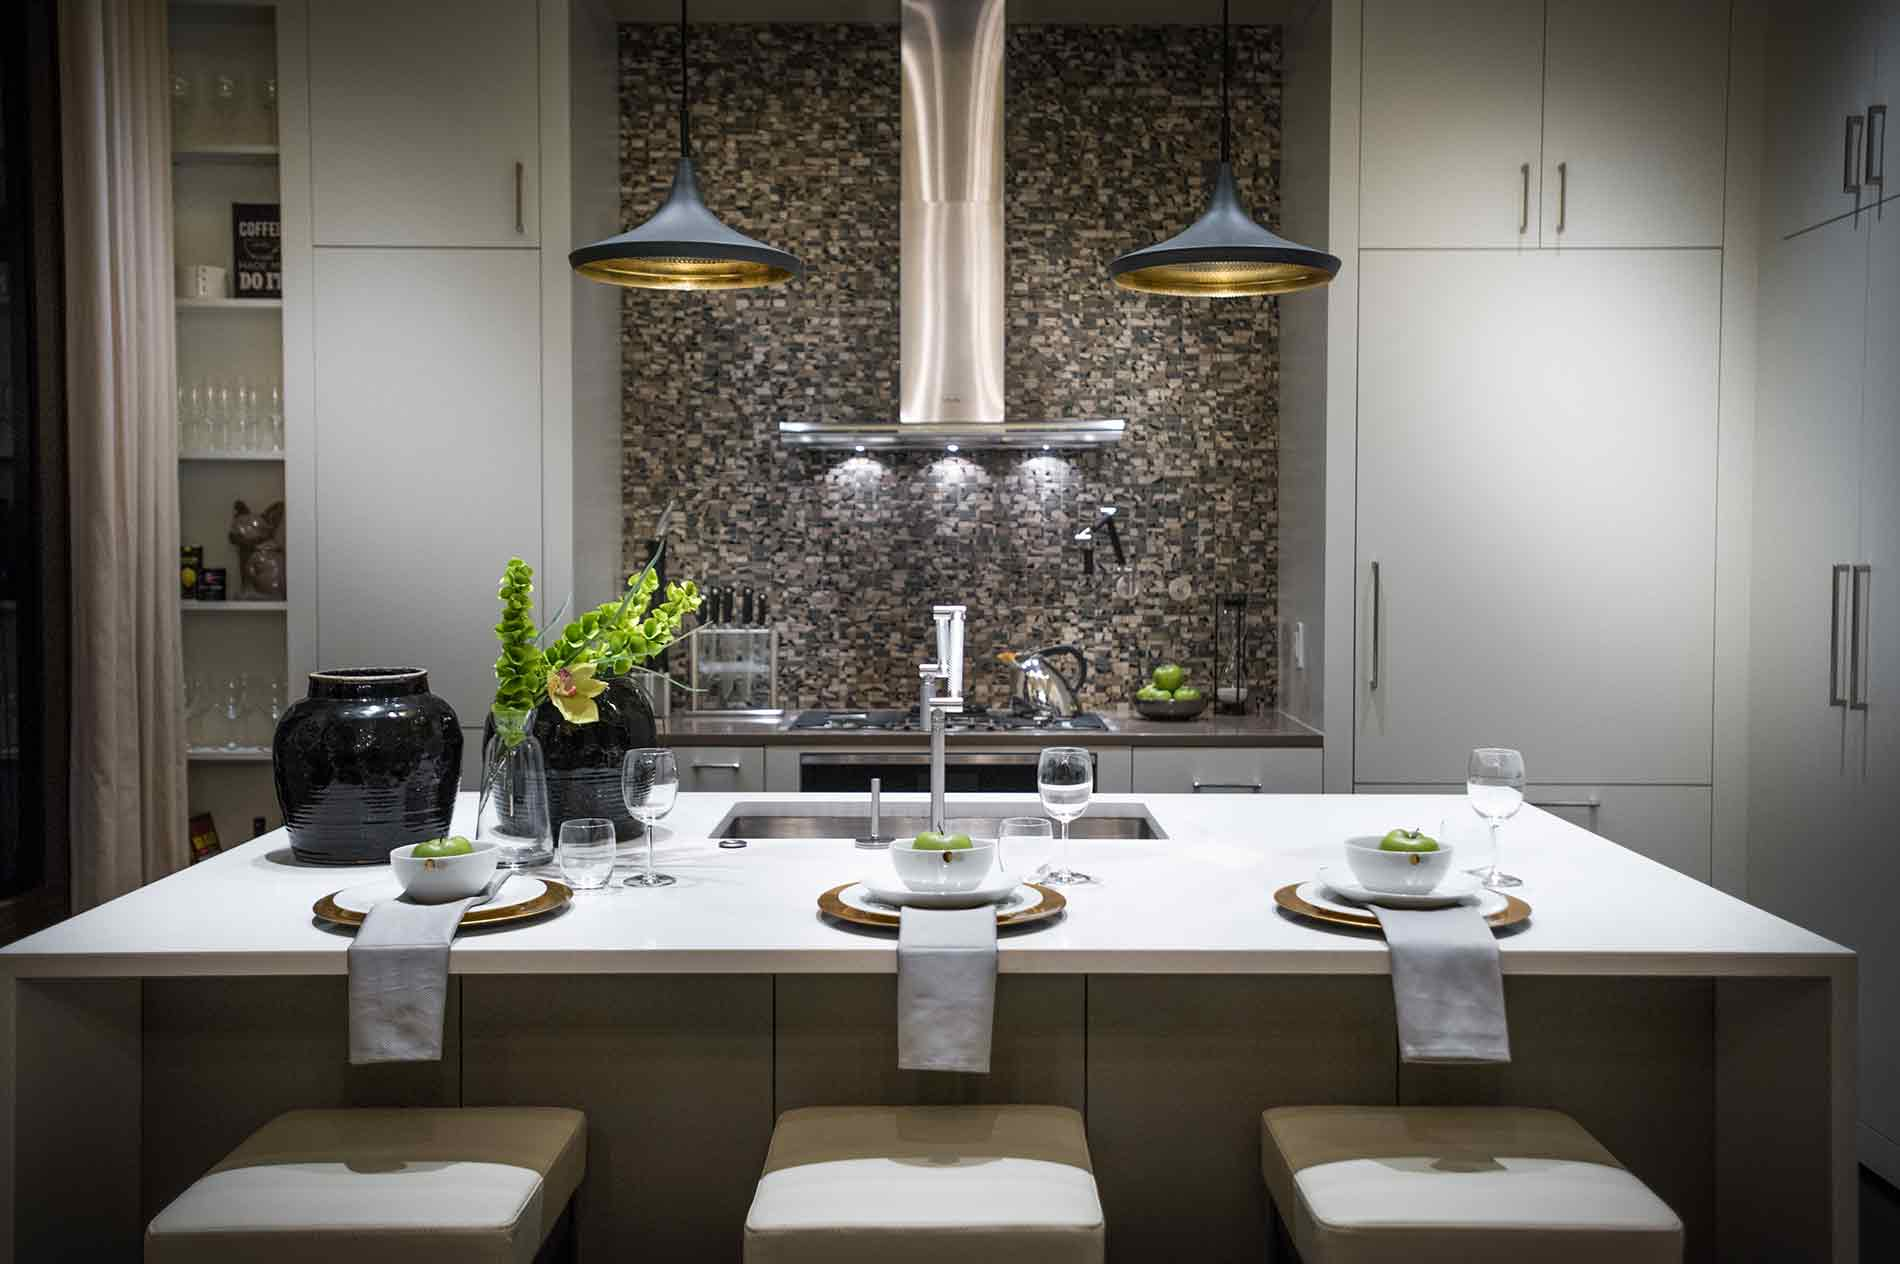 kitchen with tiled backsplash from counter to ceiling